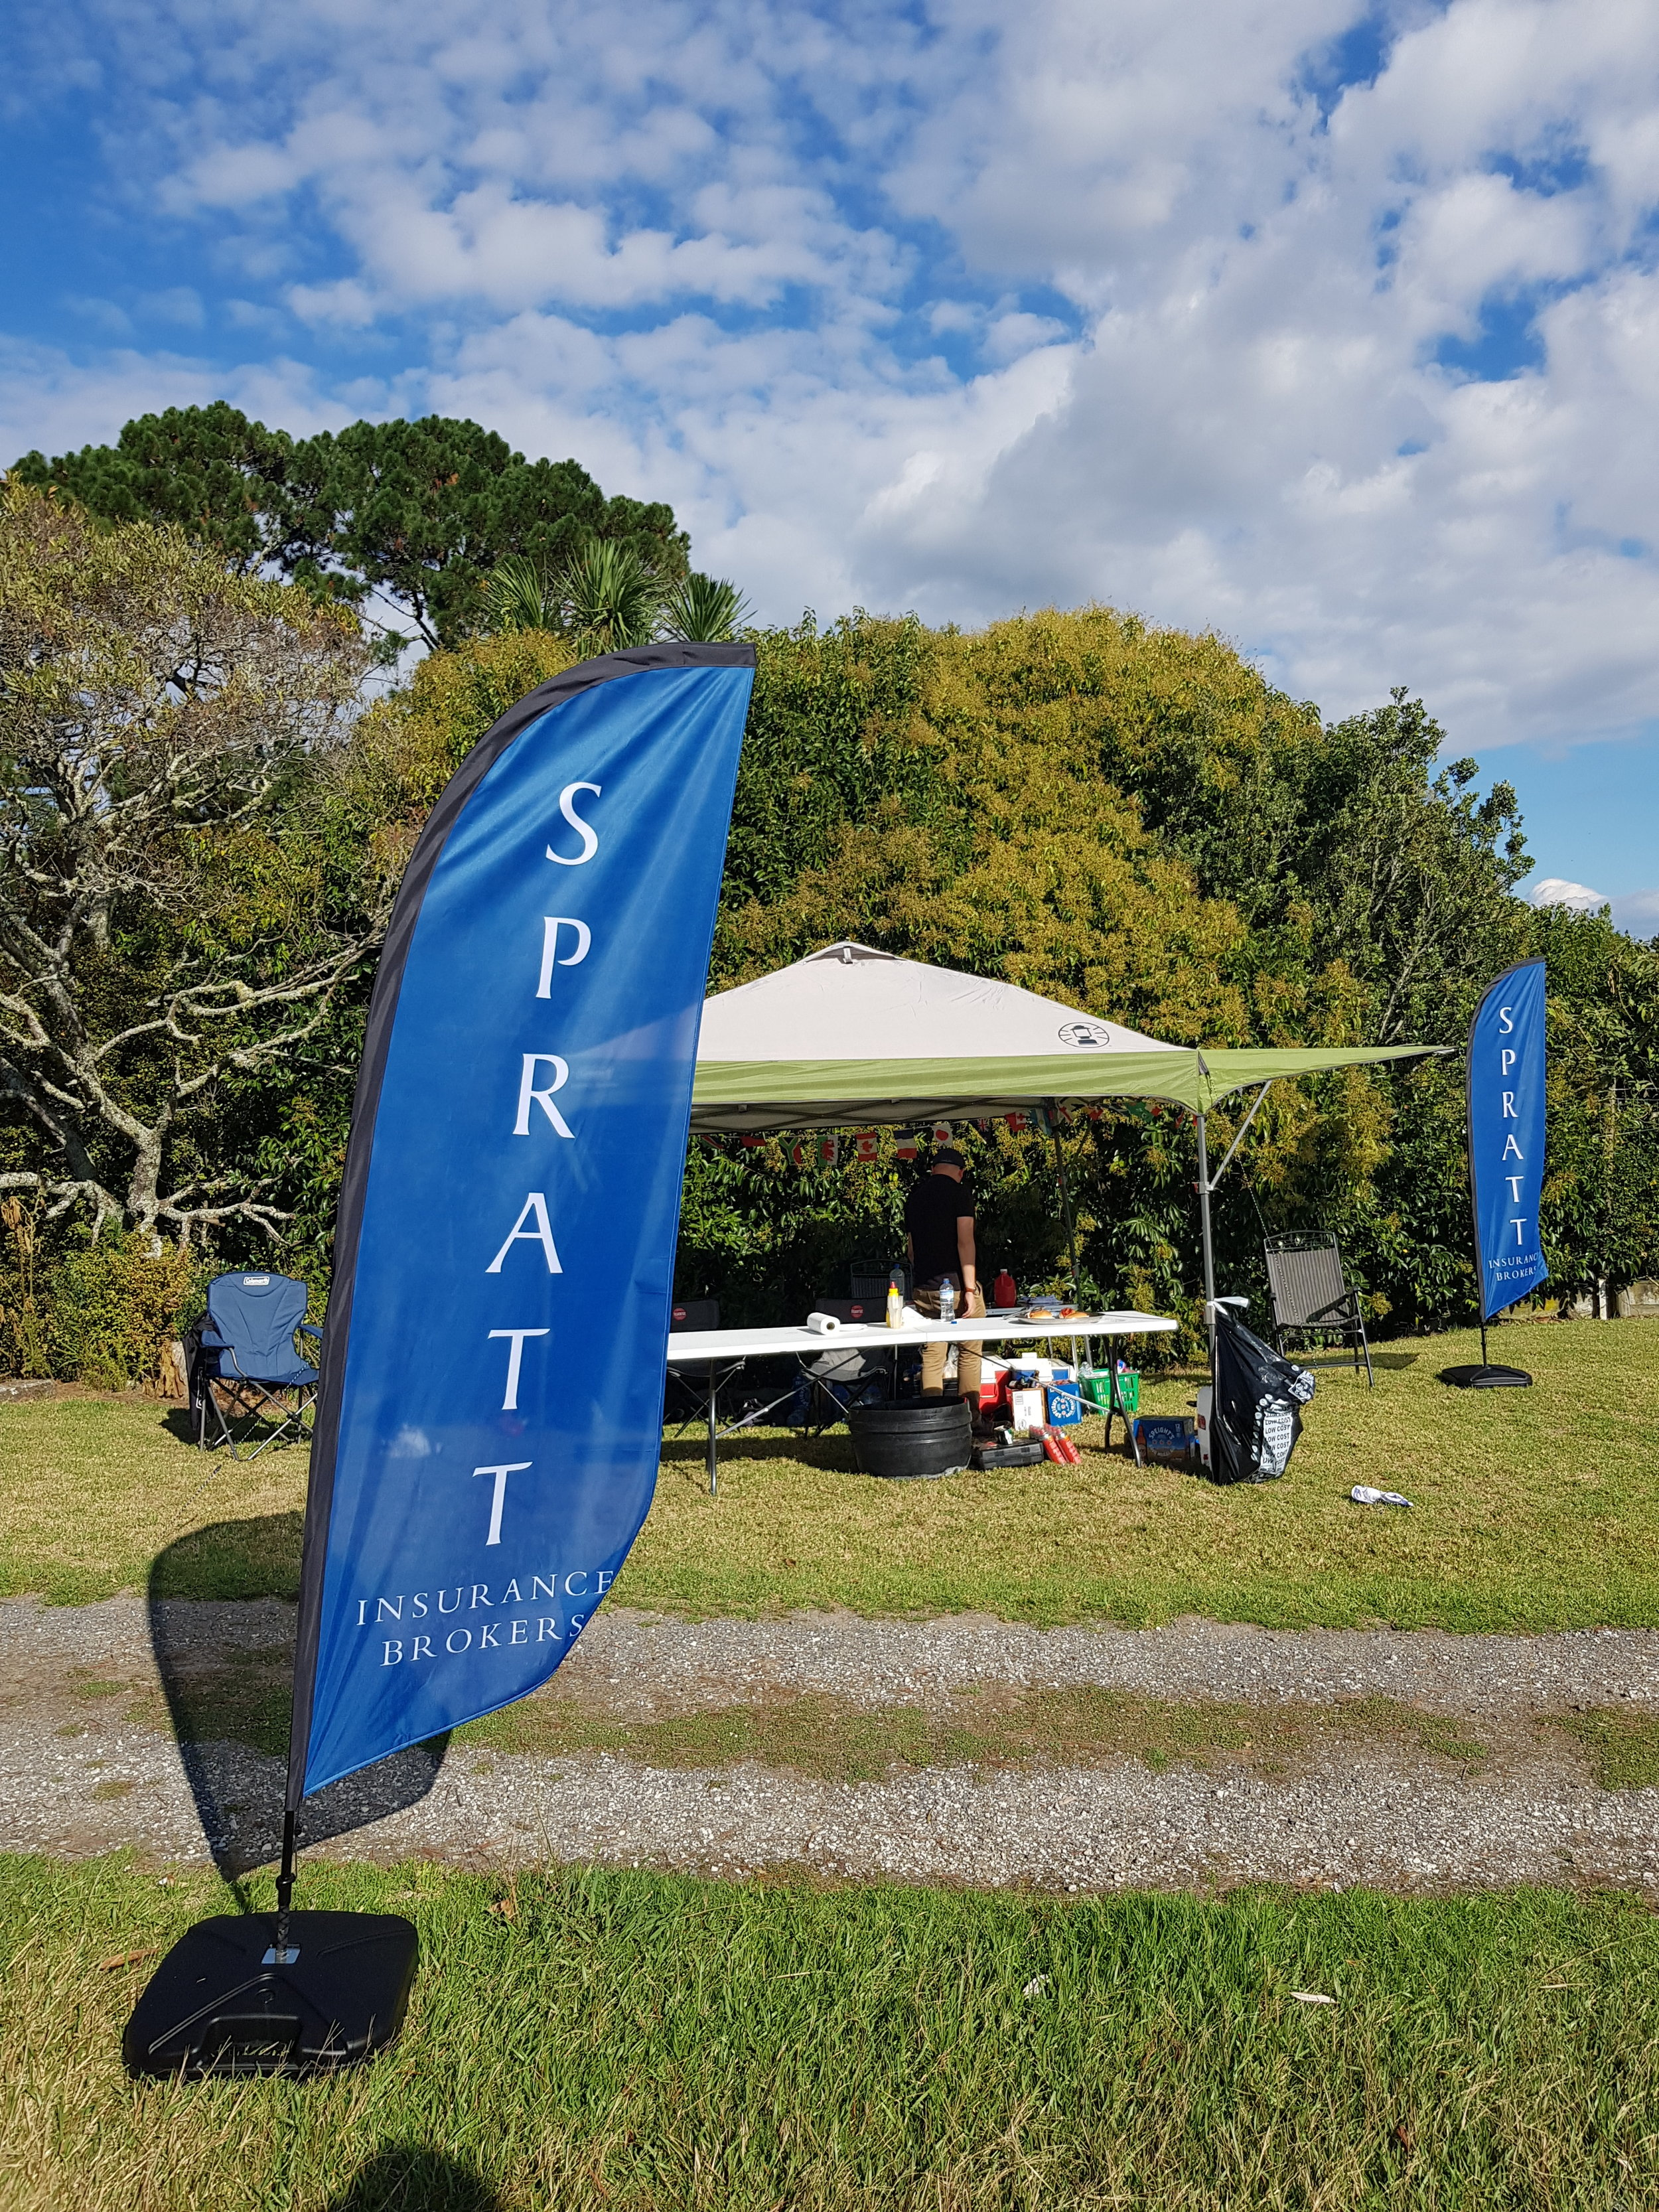 Spratt Insurance Brokers banner displayed at the Henderson Rotary Golf Day.